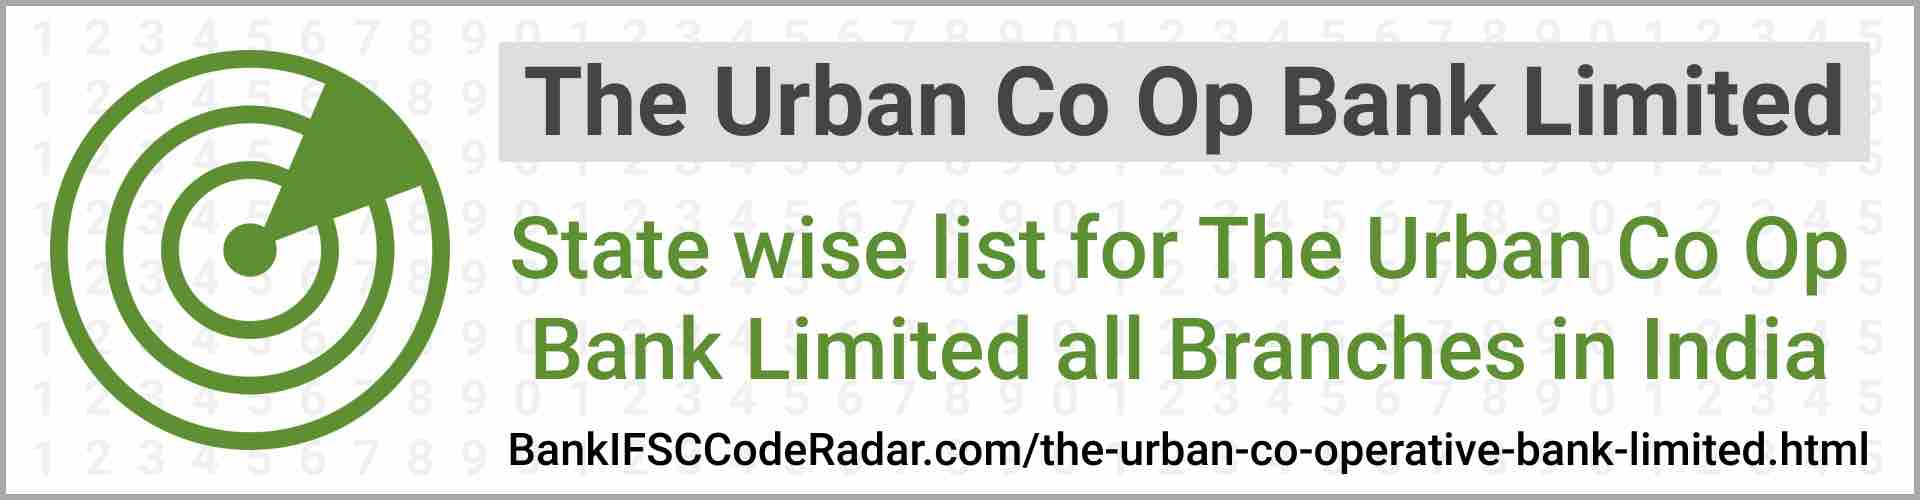 The Urban Co Operative Bank Limited All Branches India